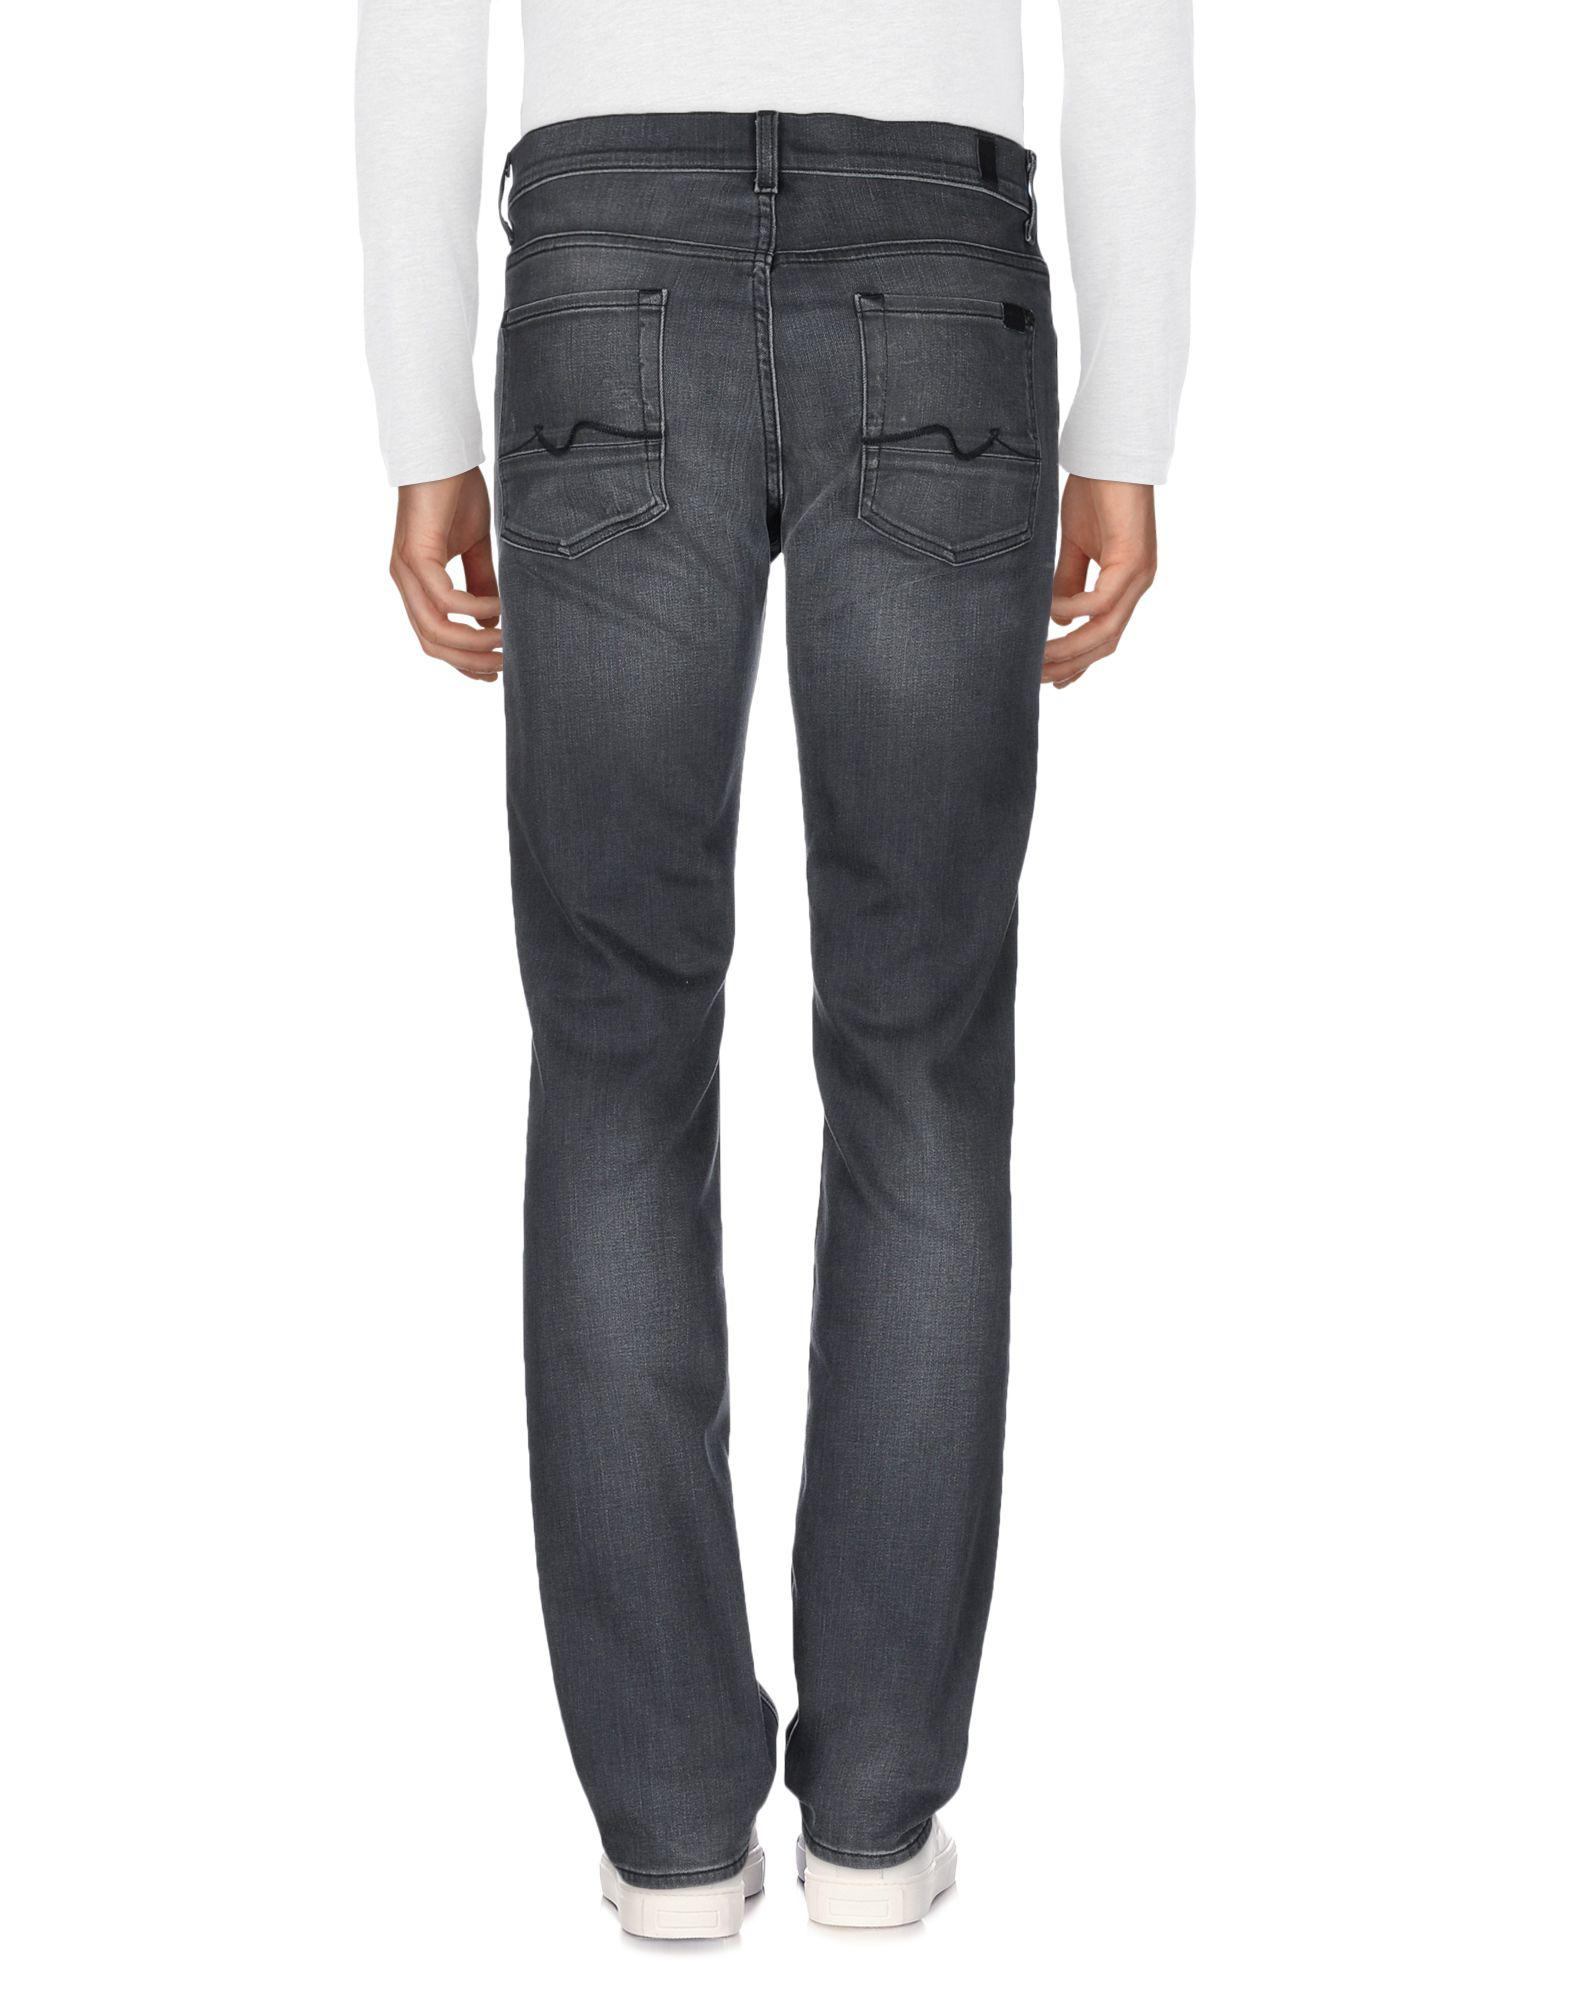 7 For All Mankind Denim Trousers in Lead (Blue) for Men